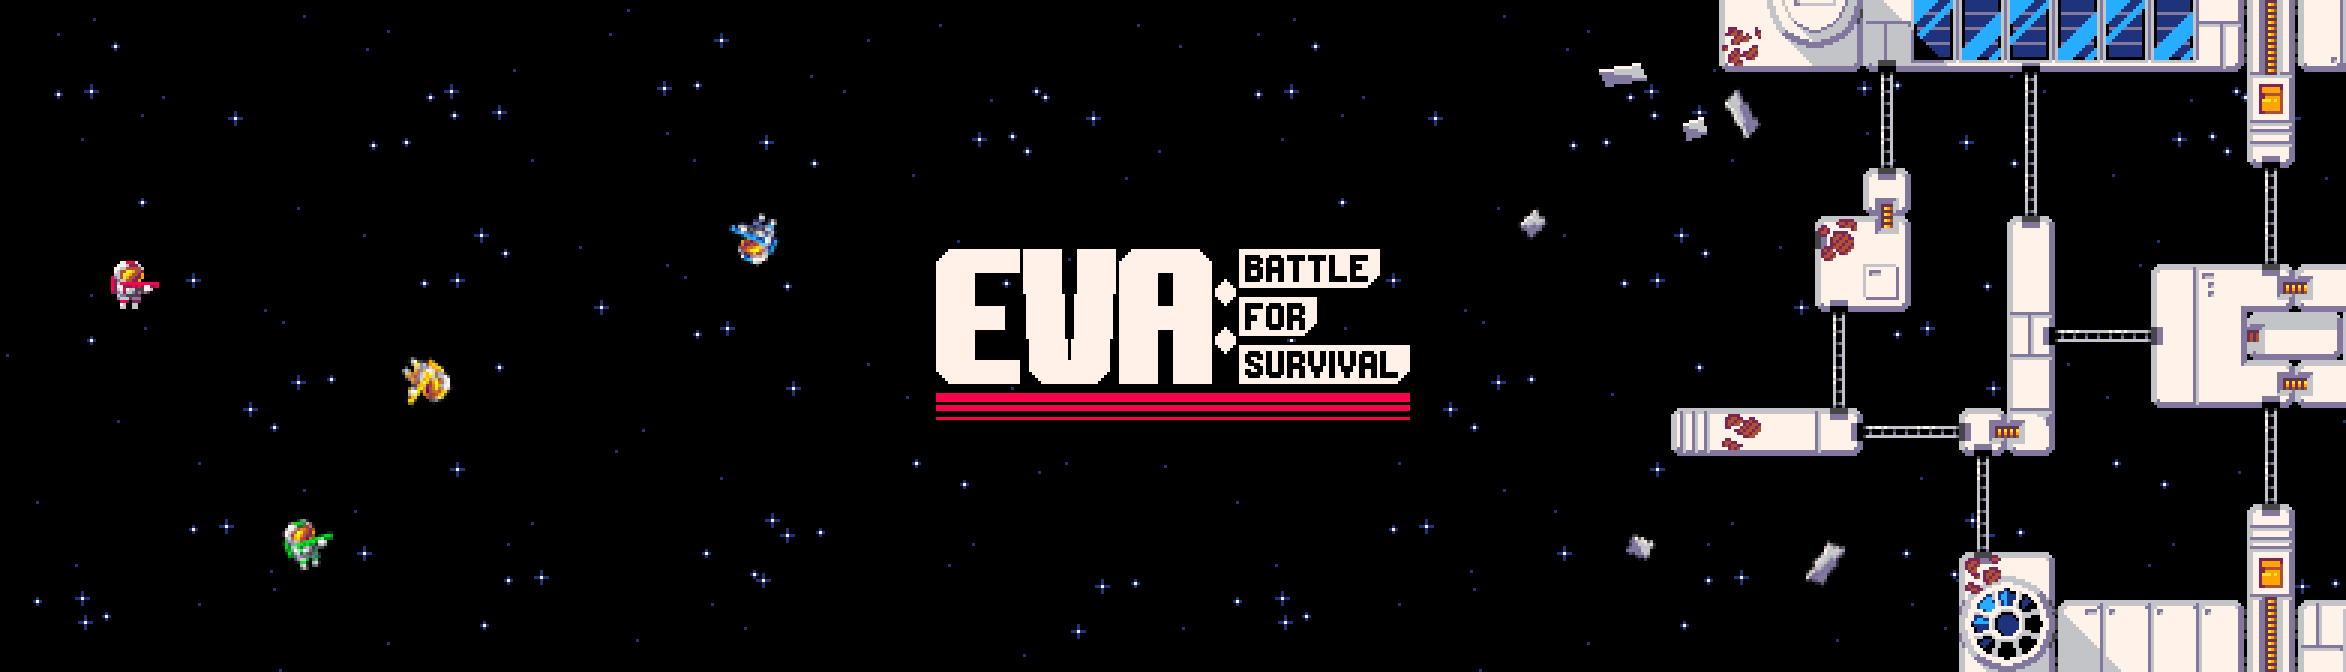 EVA: Battle For Survival